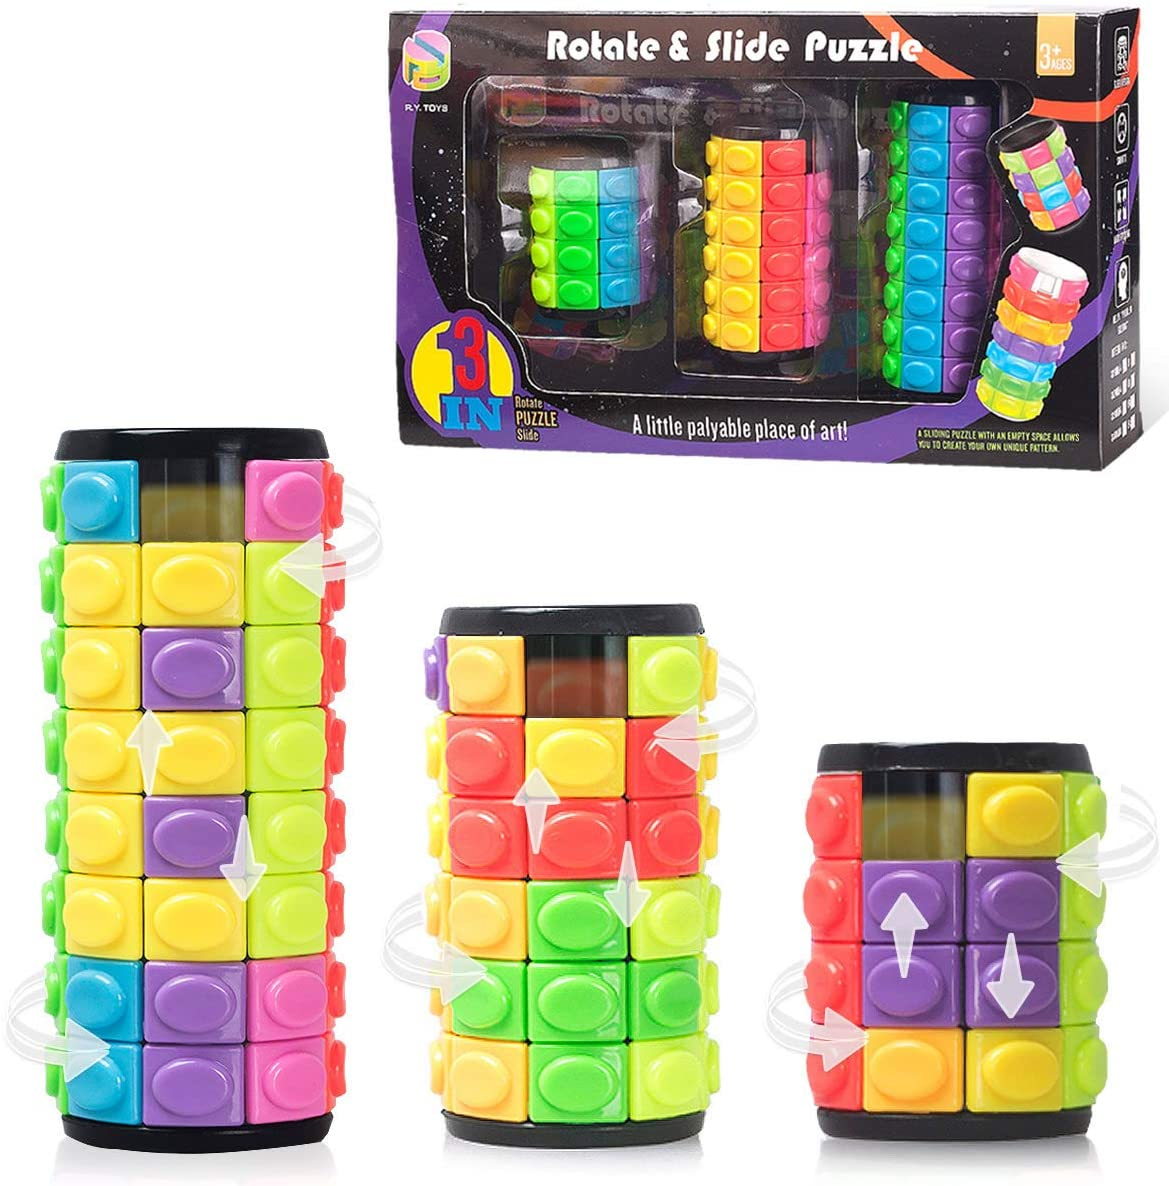 R.Y.TOYS Fidget Toys Special Al sold out. price for Adults Teens Magic Boys Cube Puzz Girls